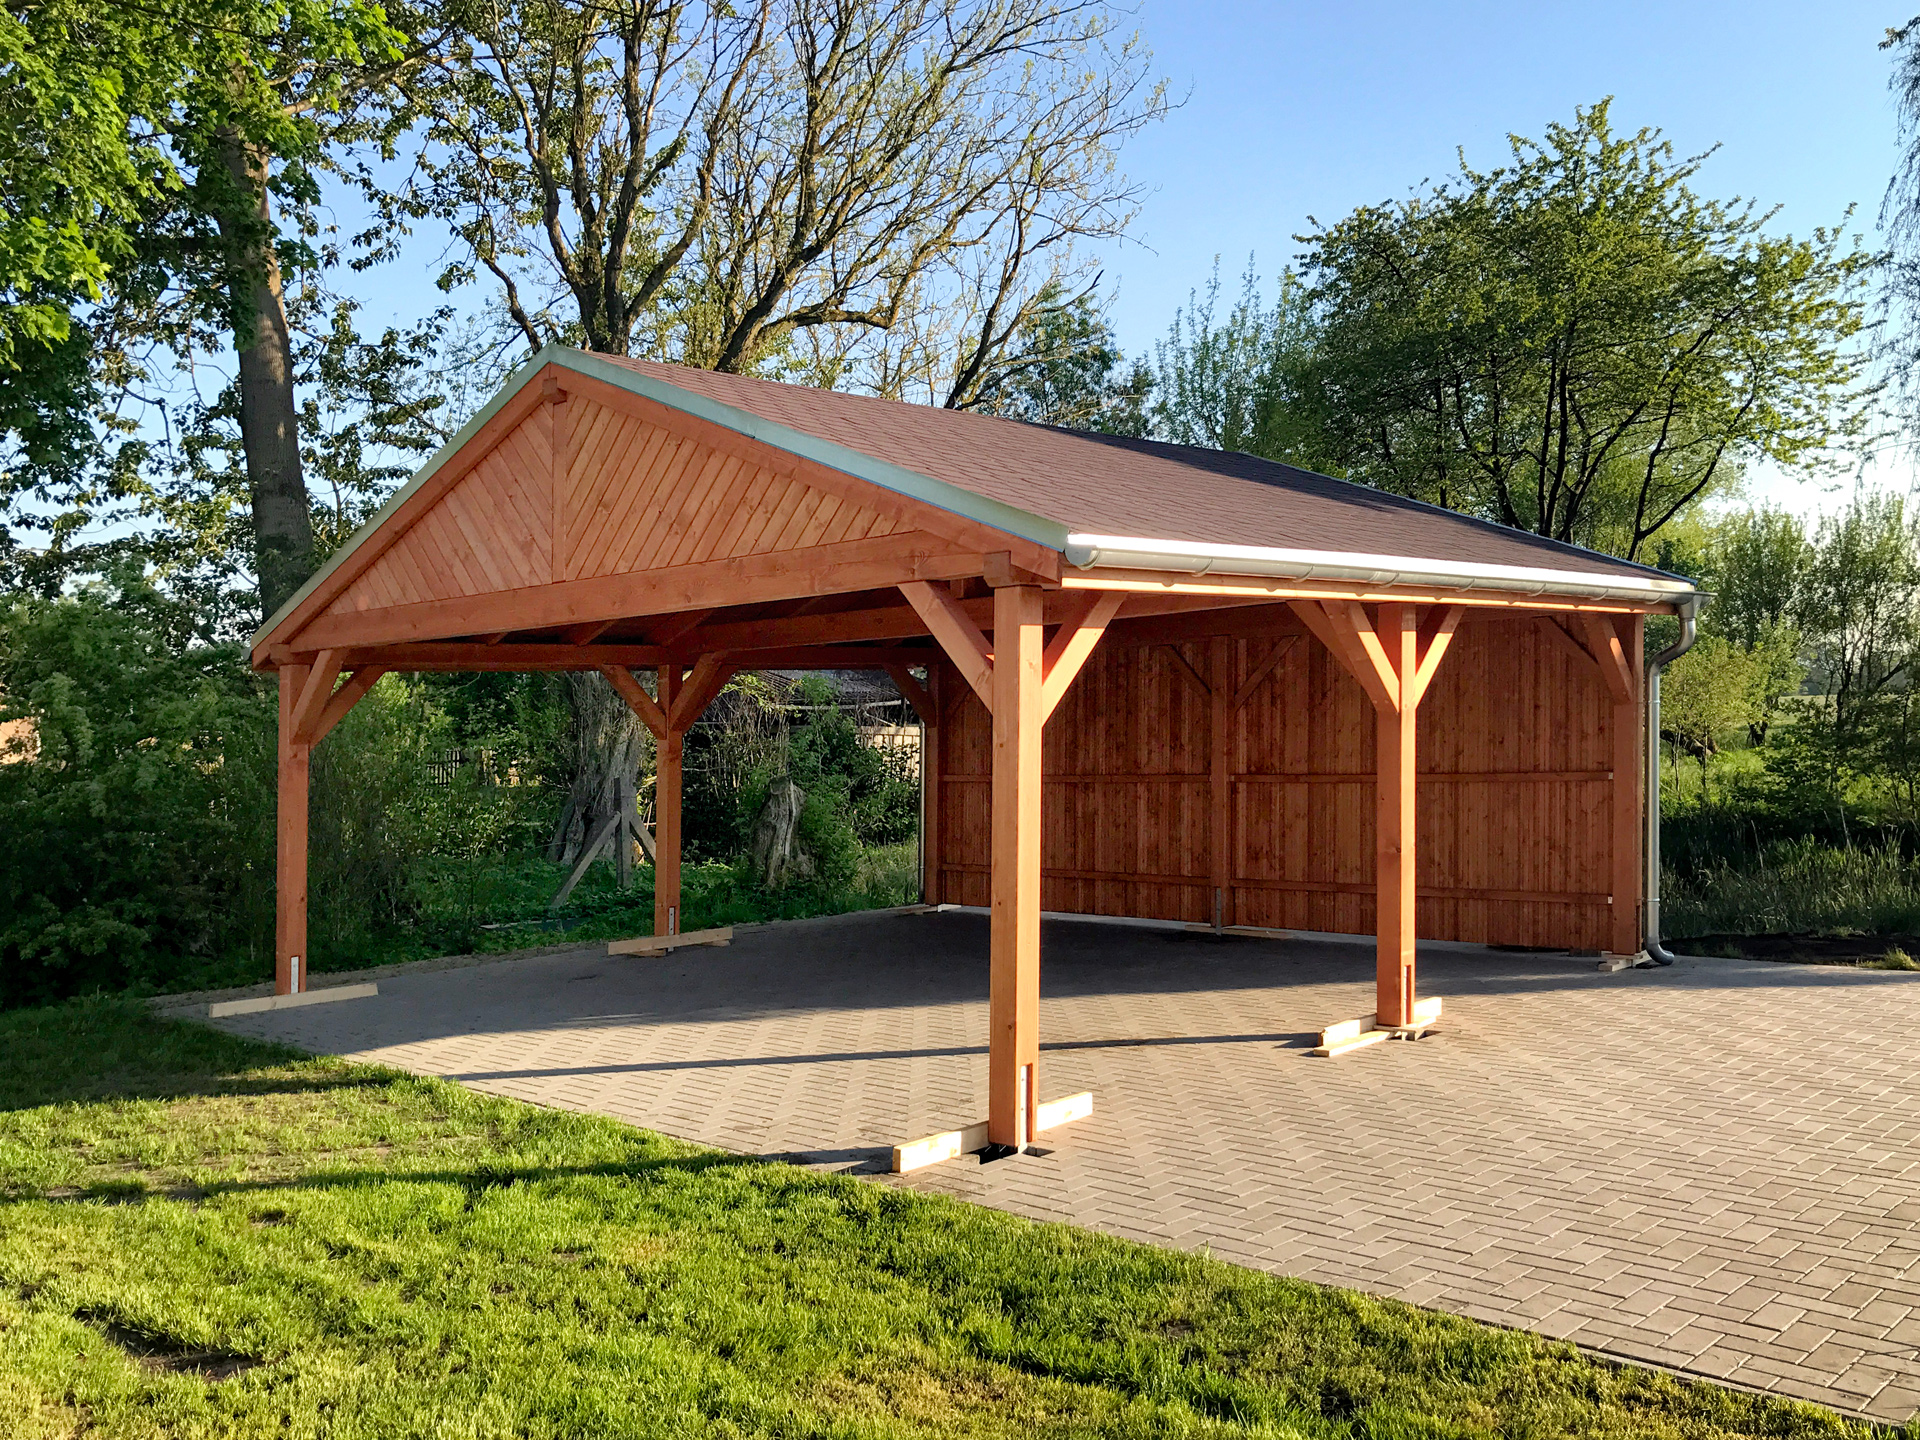 Carport satteldach amazing mit with carport satteldach mit